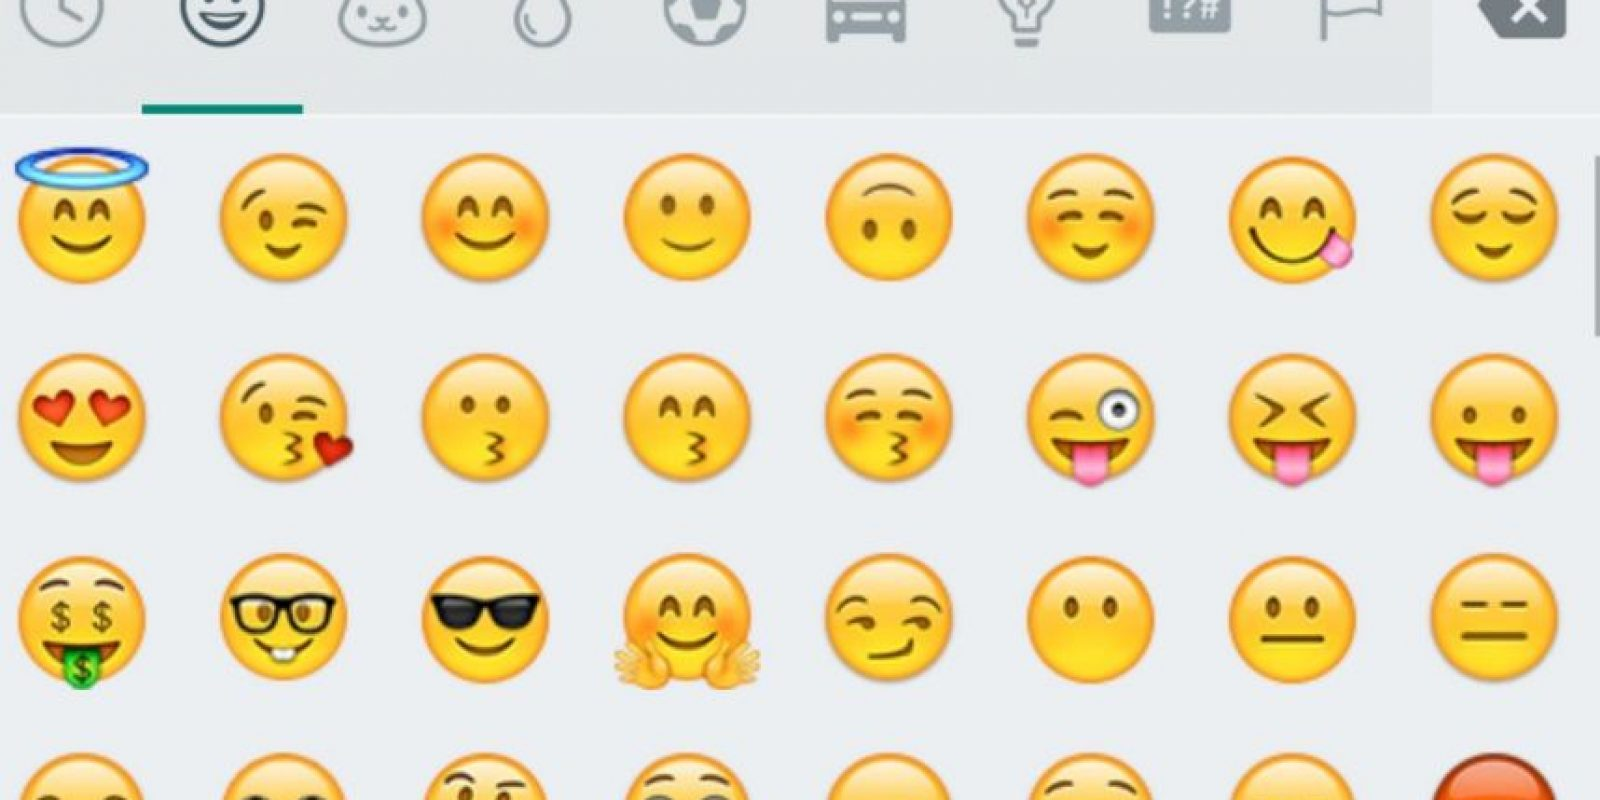 Nuevos emojis estarán disponibles en WhatsApp para Android. Foto: WhatsApp